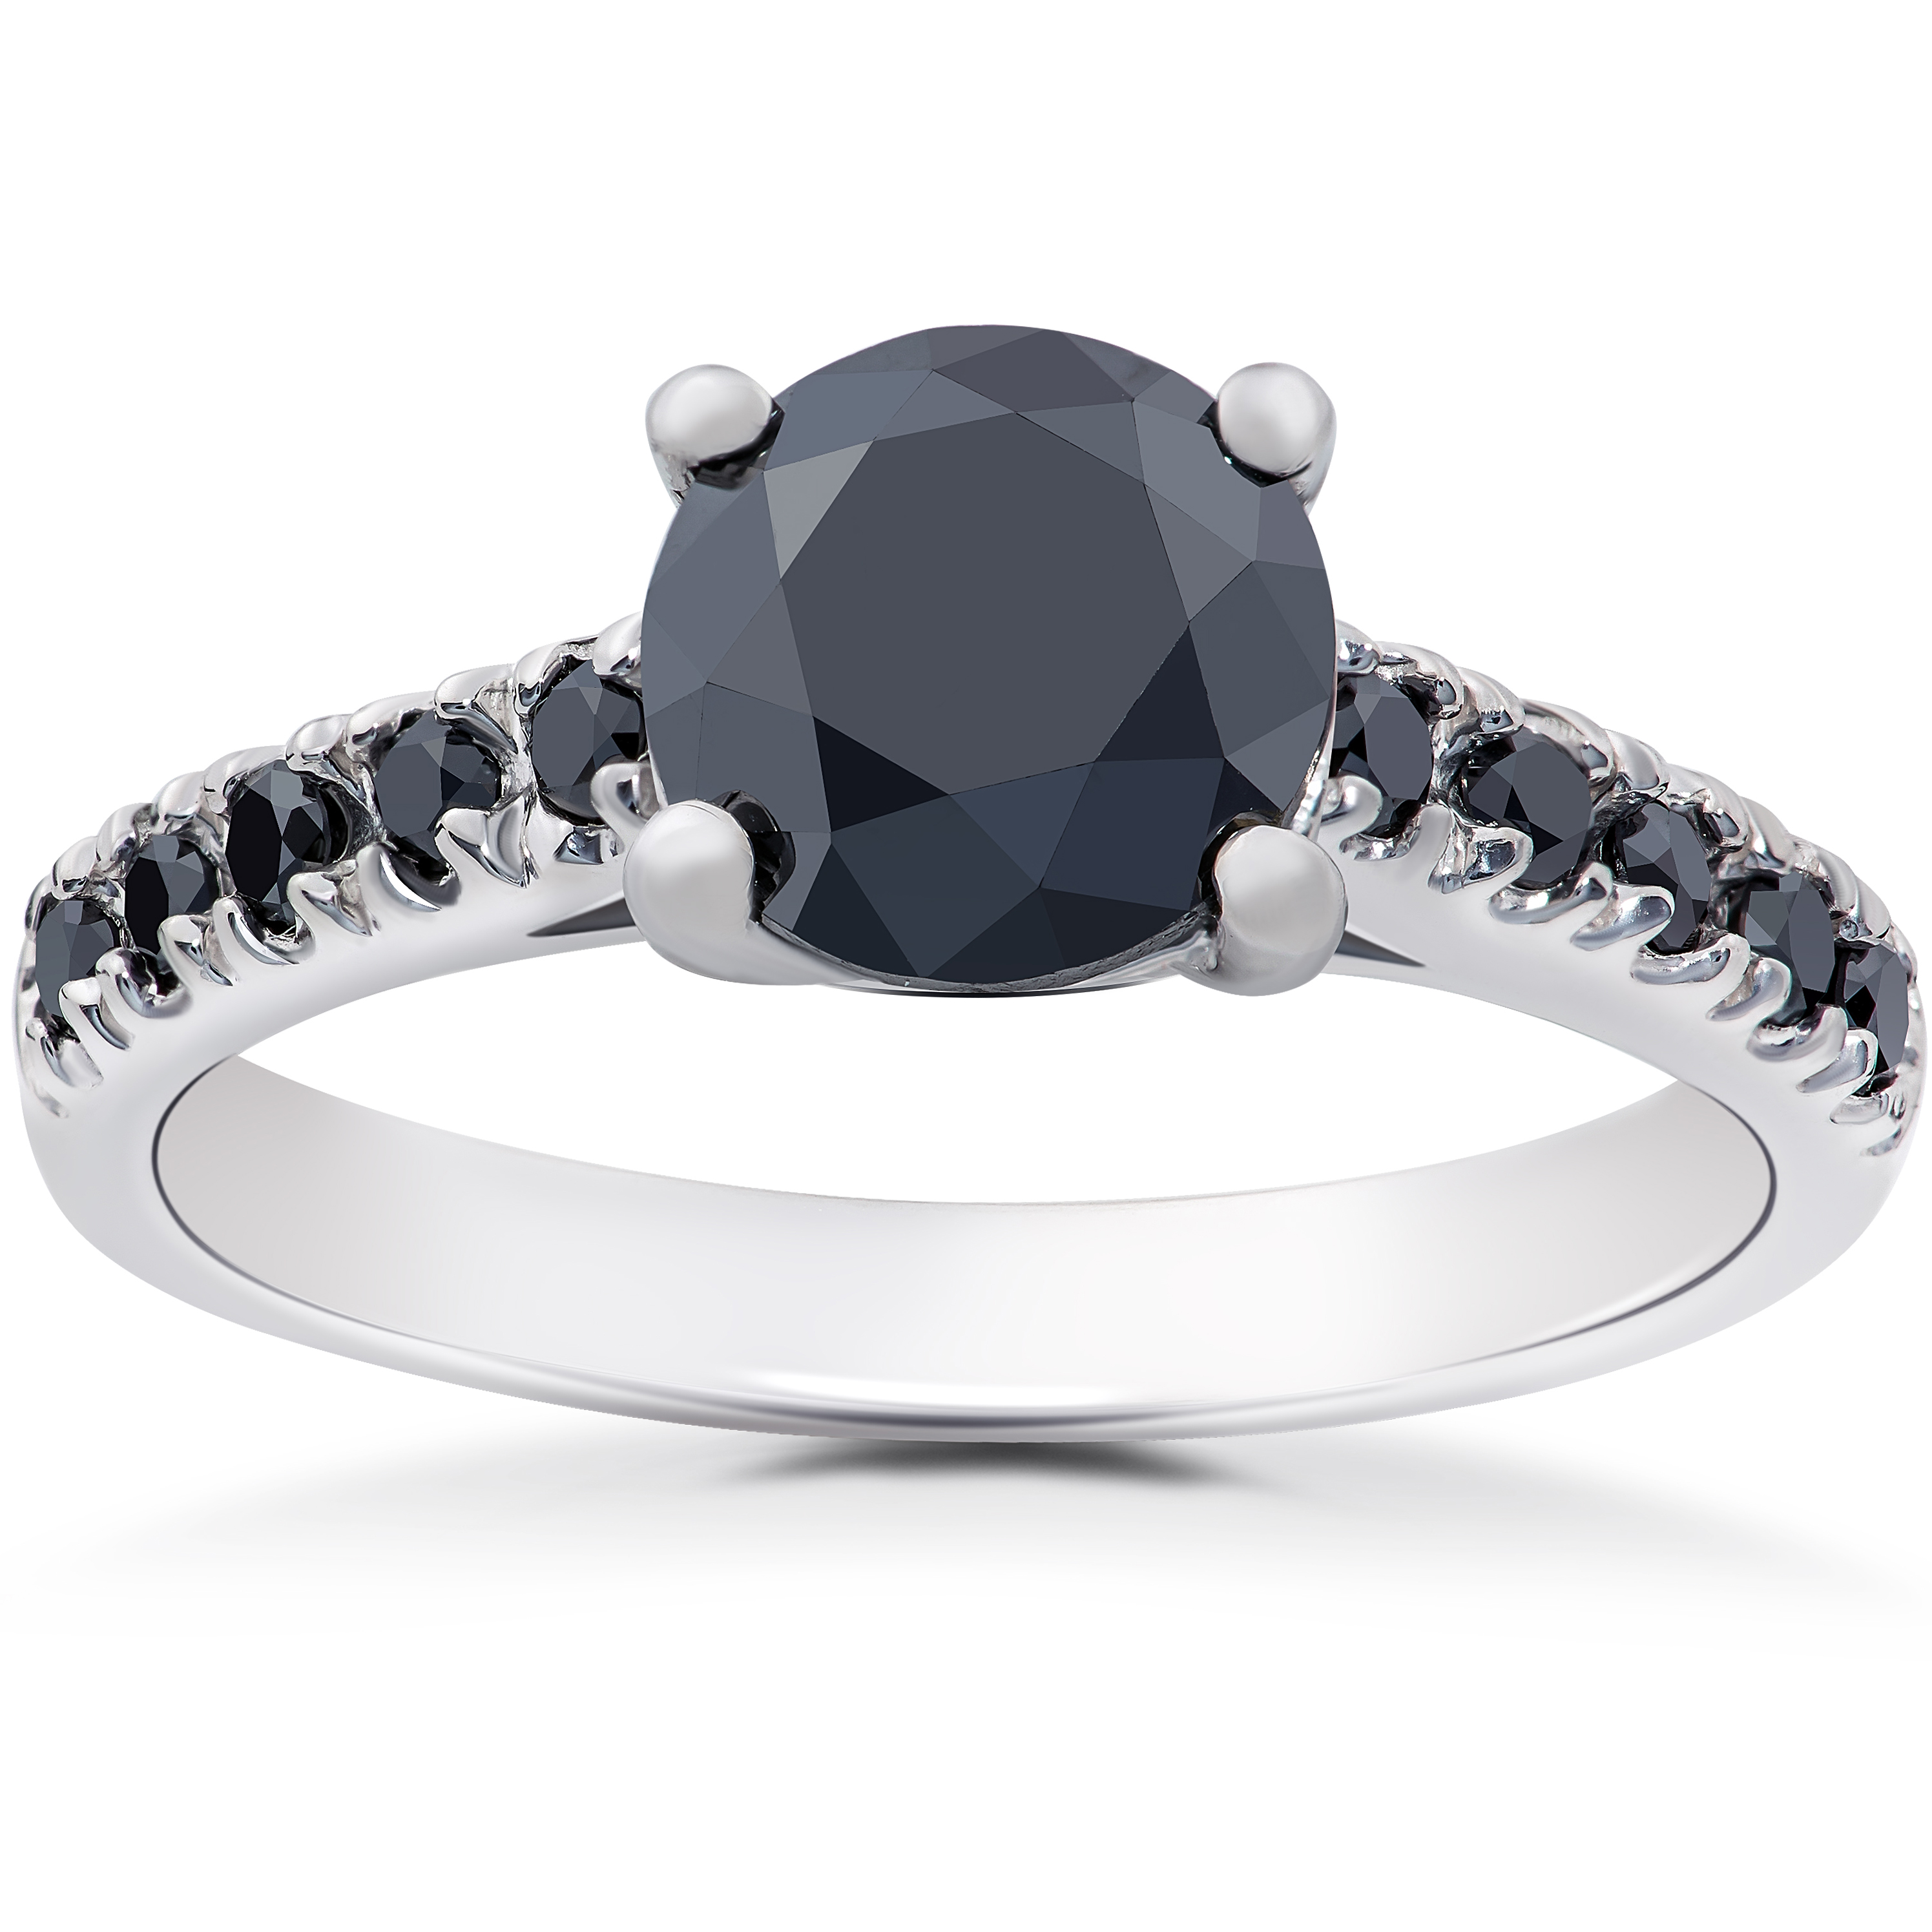 Details about 2 1/4 ct Black Diamond Solitaire Accent Engagement Ring 14k  White Gold